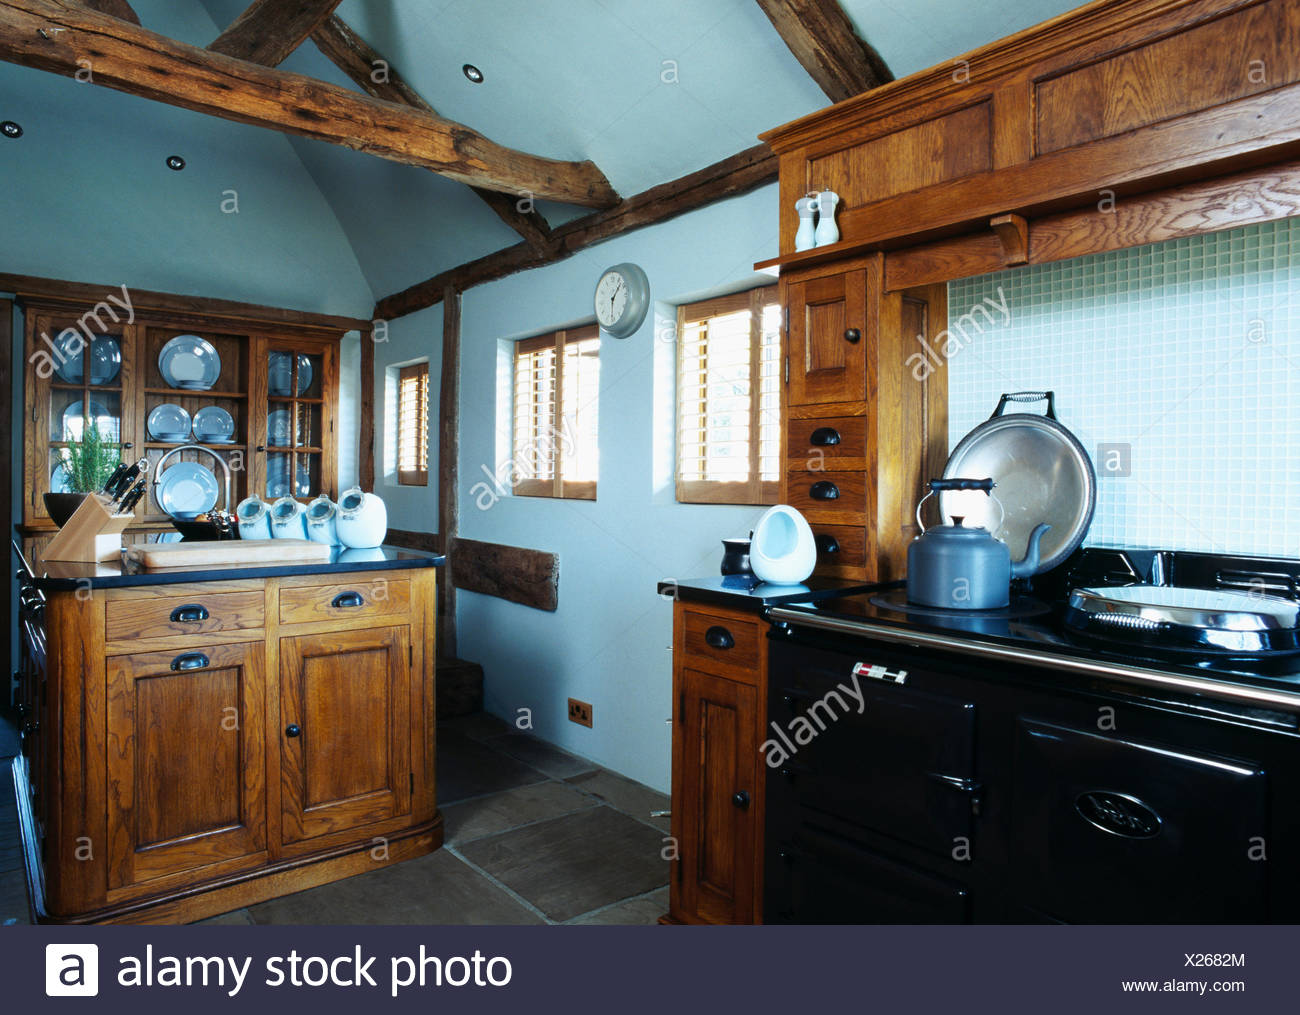 Blue Kettle On Black Aga In Pastel Blue Country Kitchen With ...